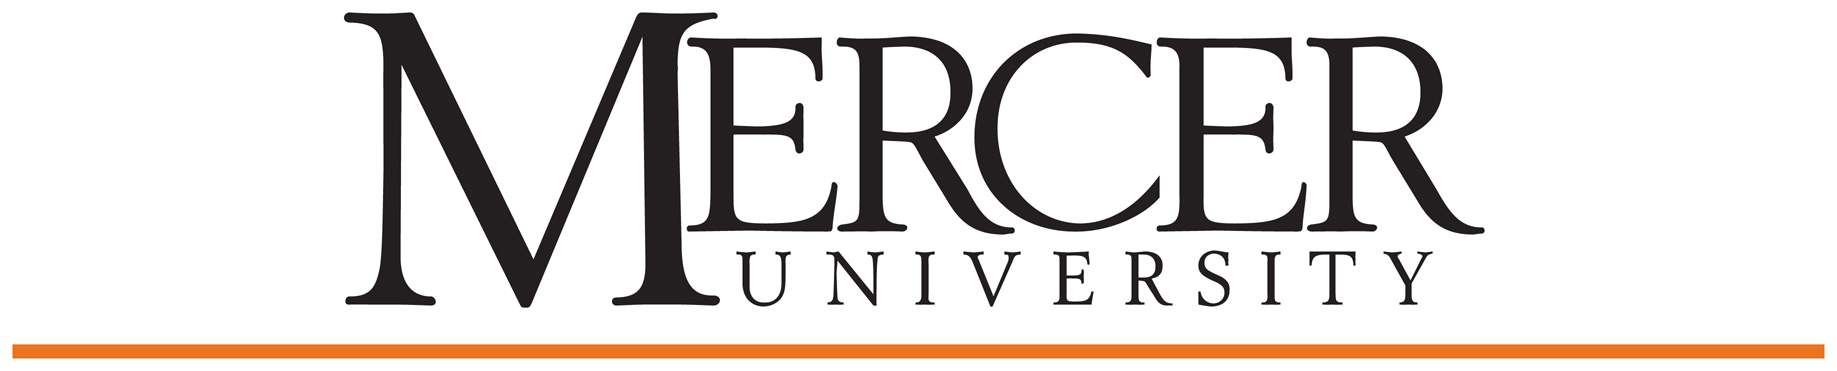 mercer university images